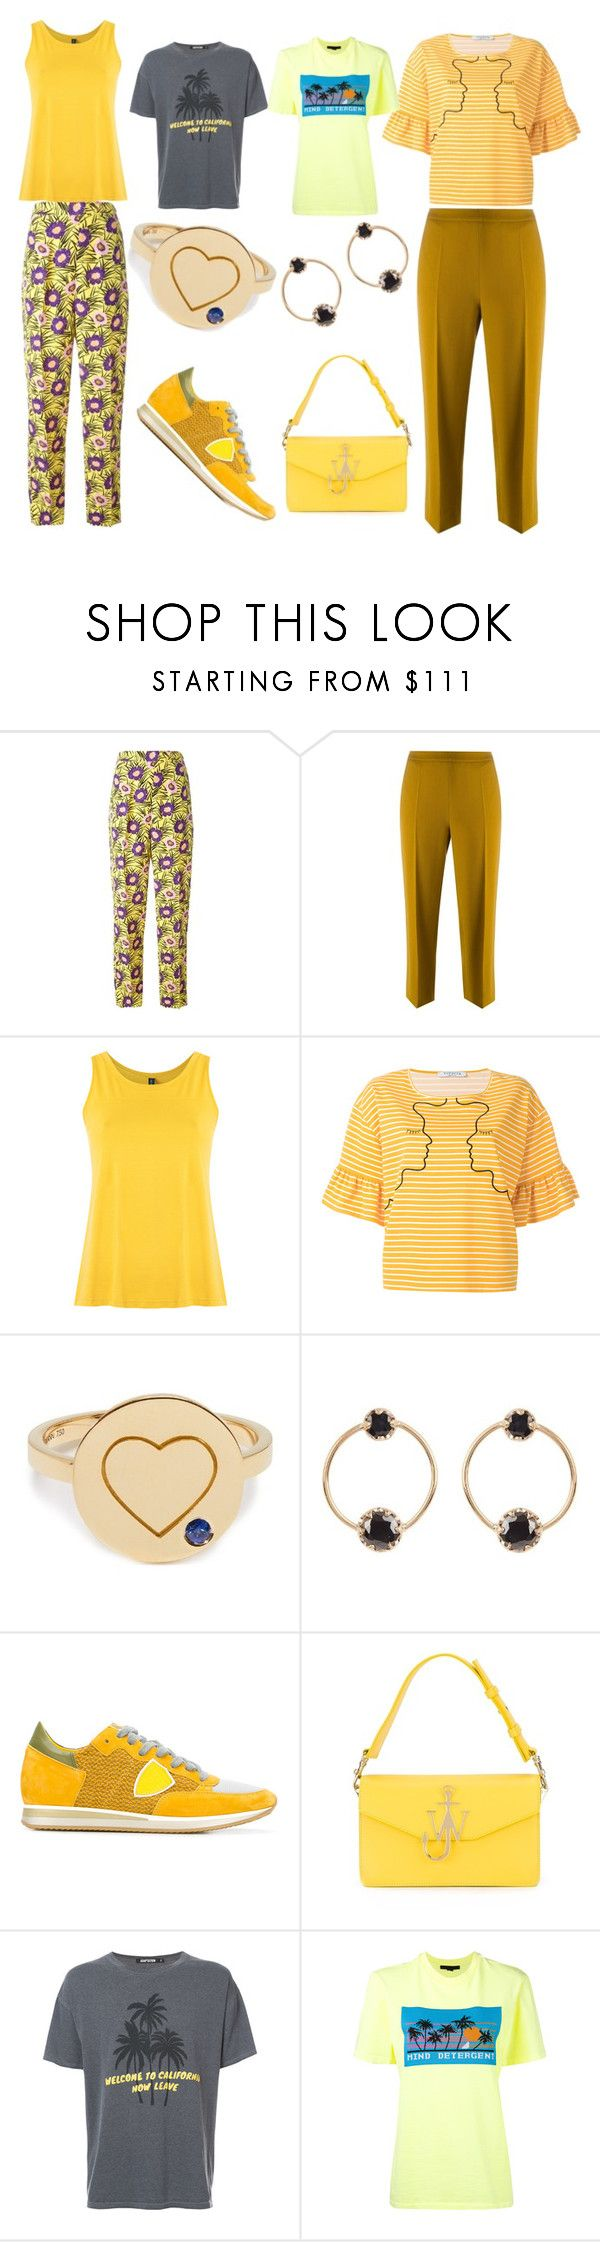 """""""Casual Style"""" by justinallison ❤ liked on Polyvore featuring Marni, Odeeh, Lygia & Nanny, VIVETTA, Aurélie Bidermann, Loren Stewart, Philippe Model, J.W. Anderson, Adaptation and Alexander Wang"""